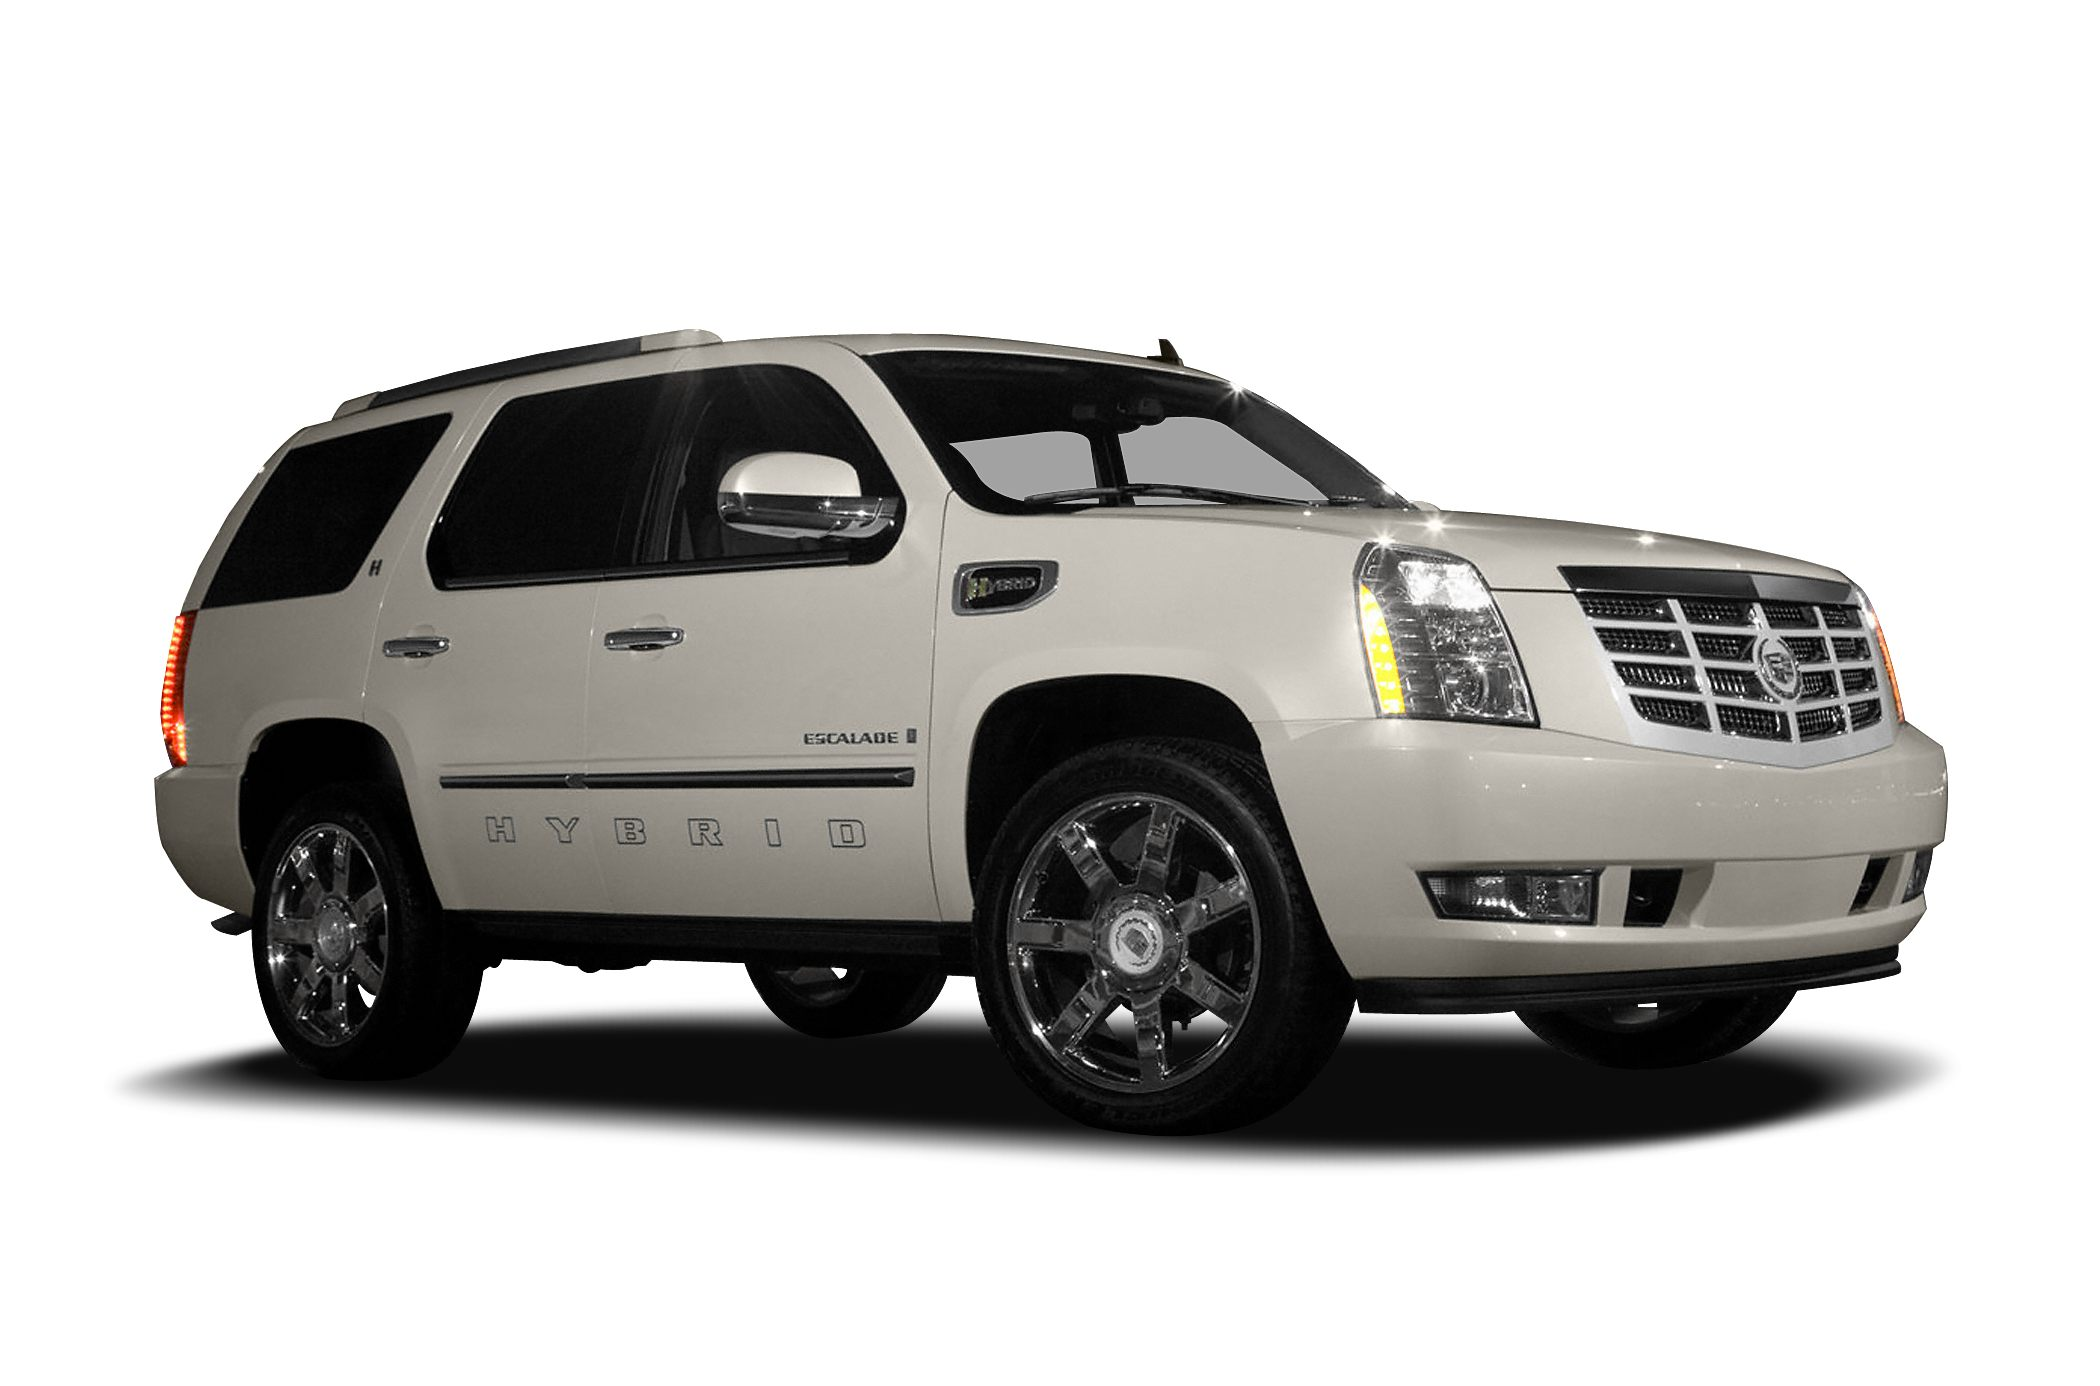 2009 Cadillac Escalade Hybrid SUV for sale in Madison for $28,749 with 88,065 miles